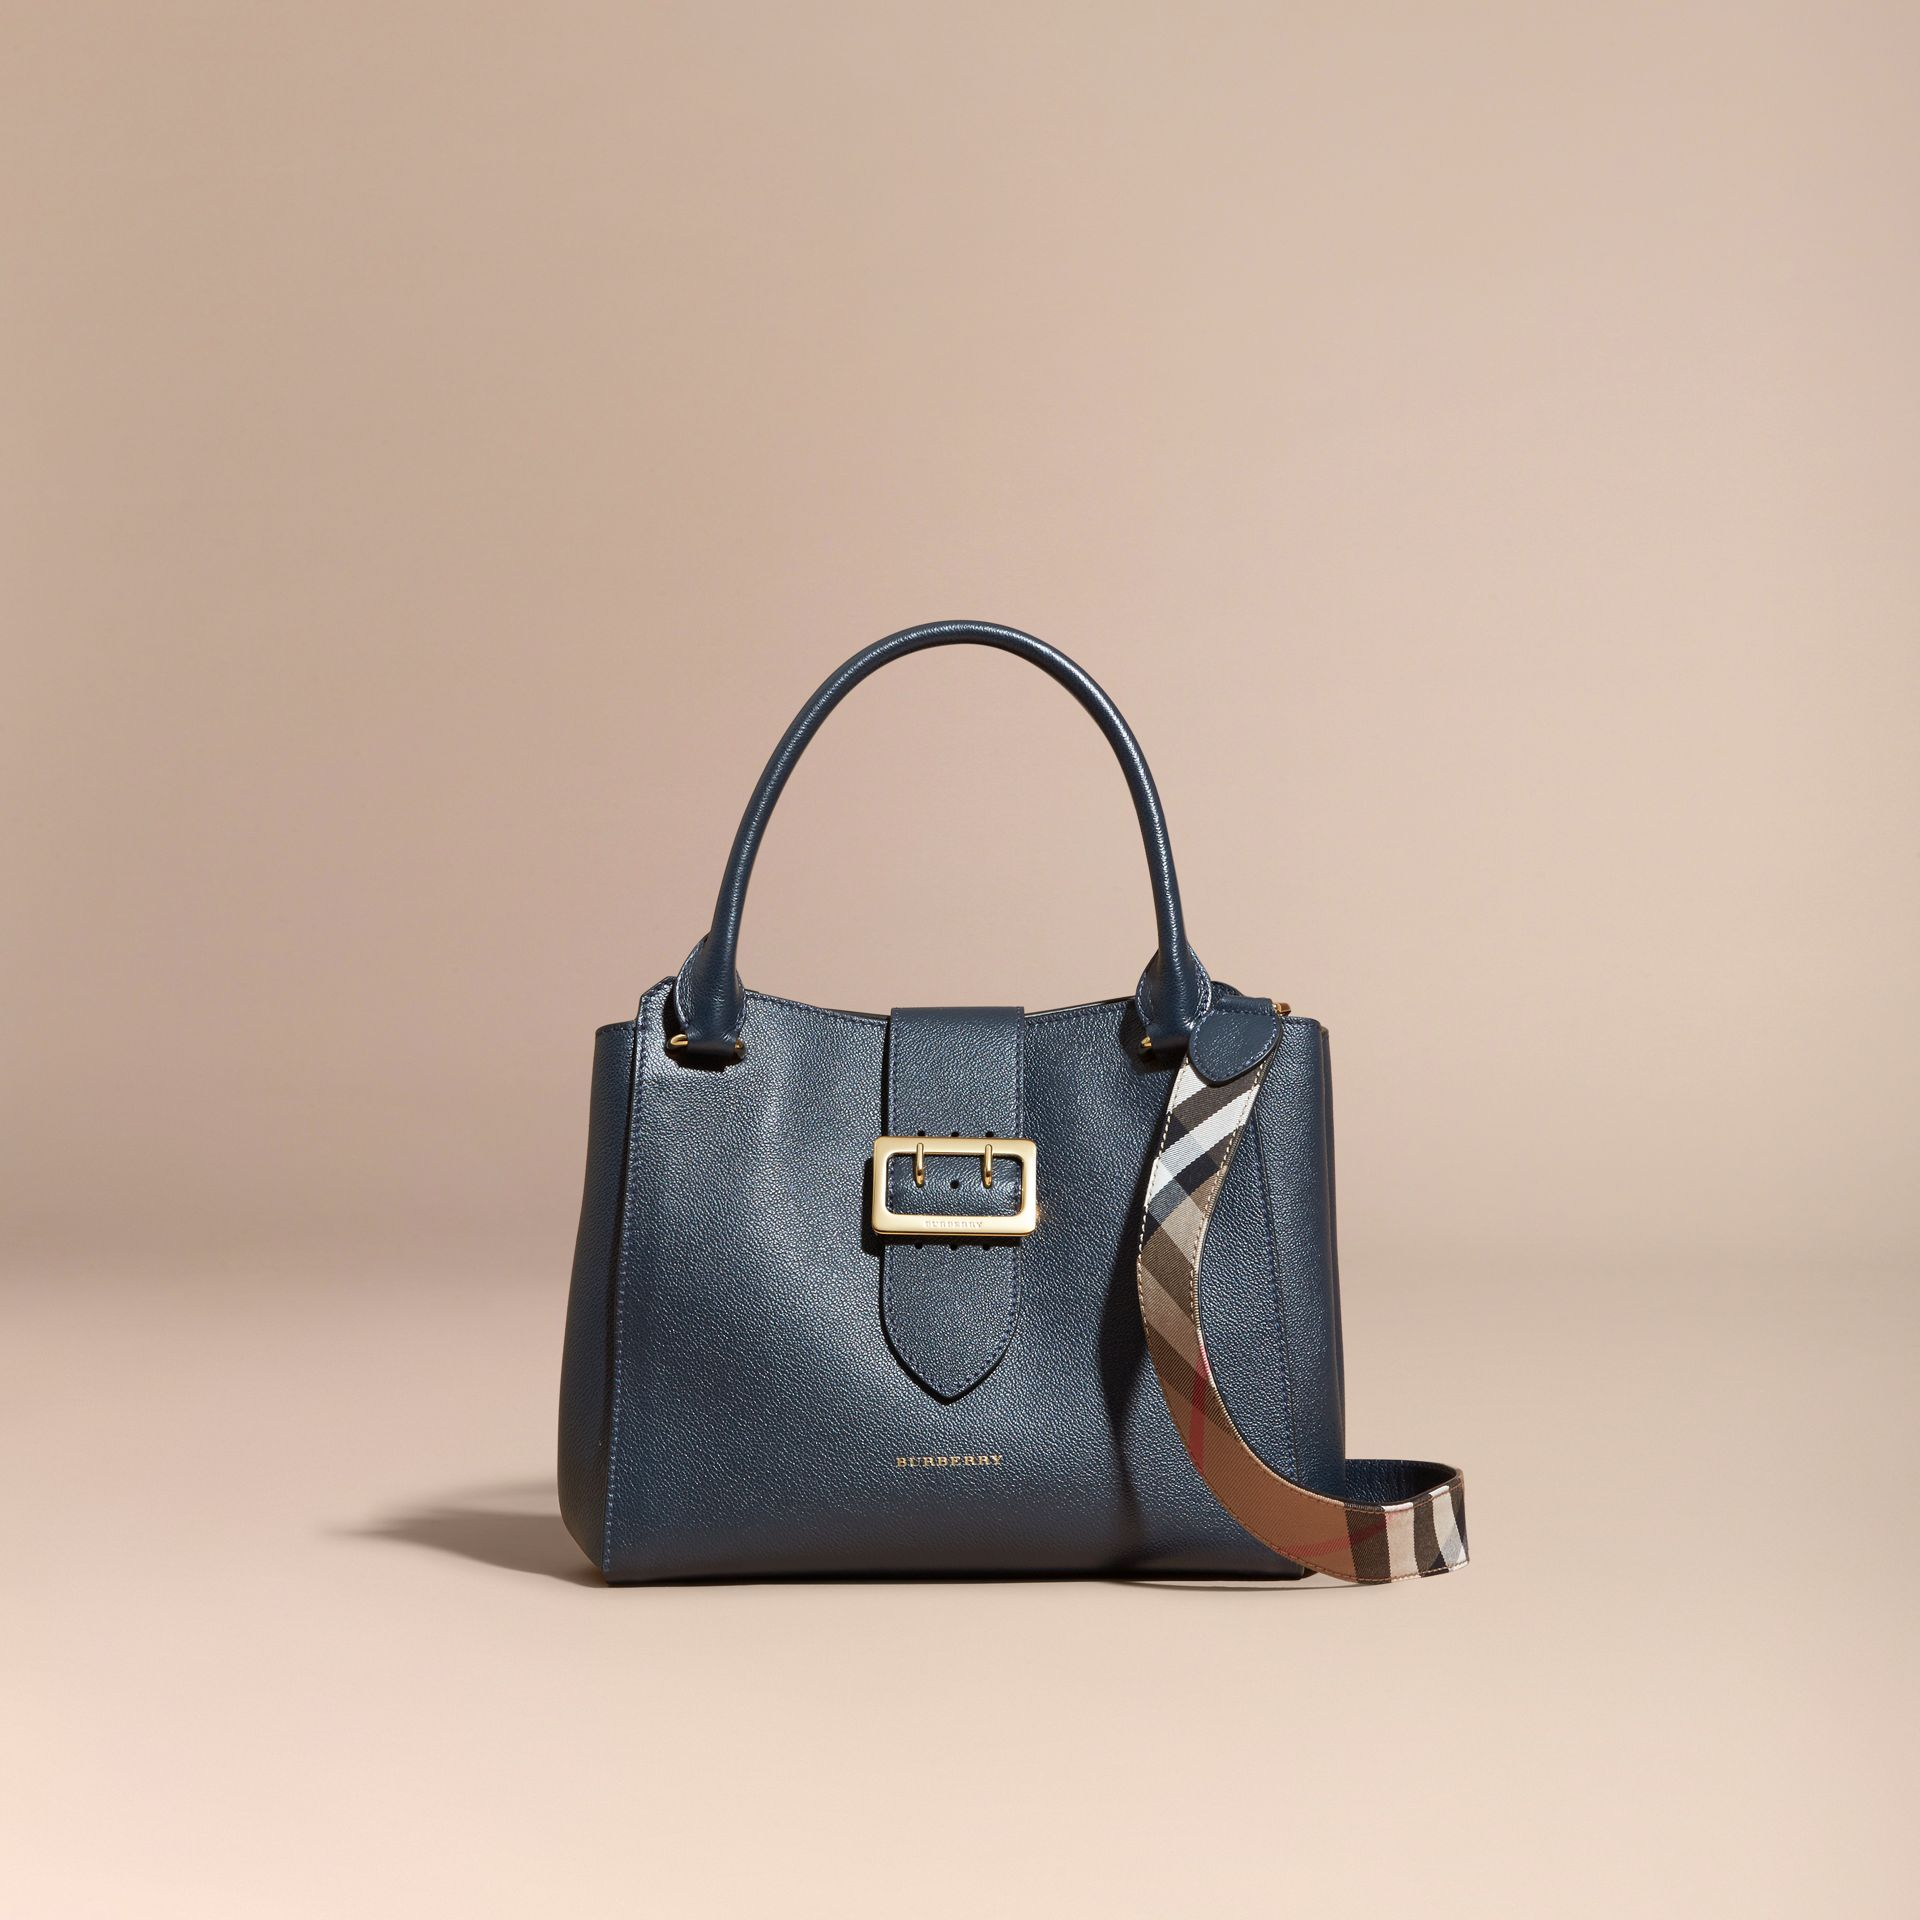 Blue carbon The Medium Buckle Tote in Grainy Leather Blue Carbon - gallery image 9